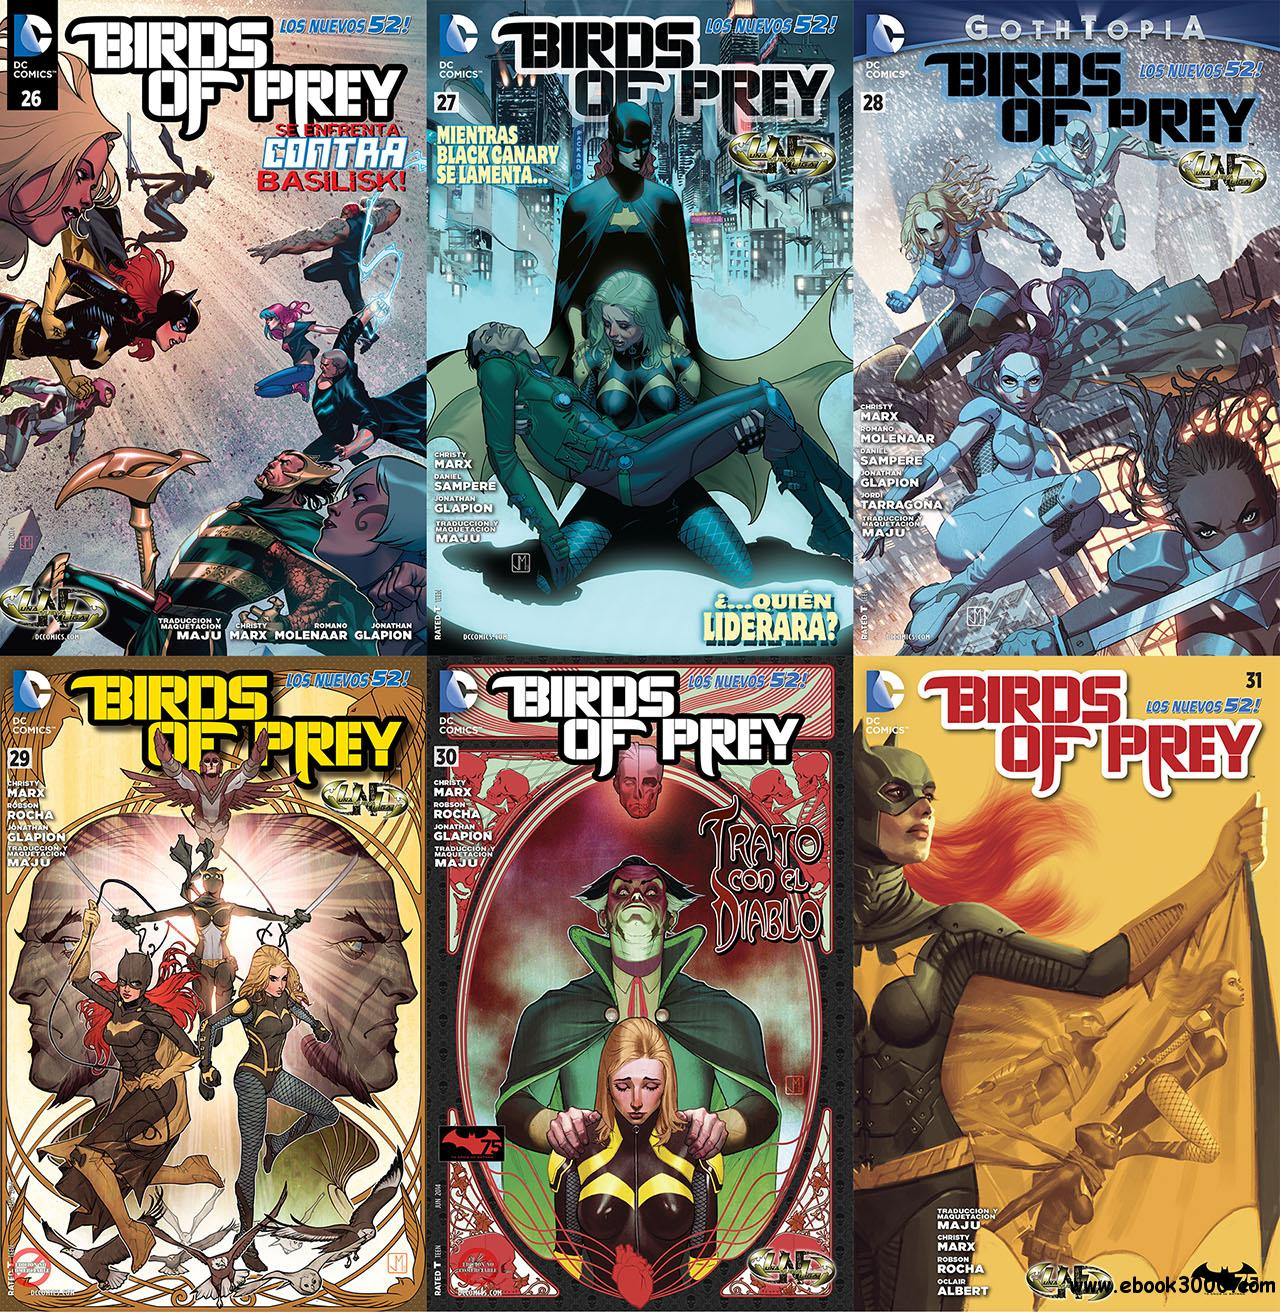 Birds of Prey Vol.3 #26-31 free download